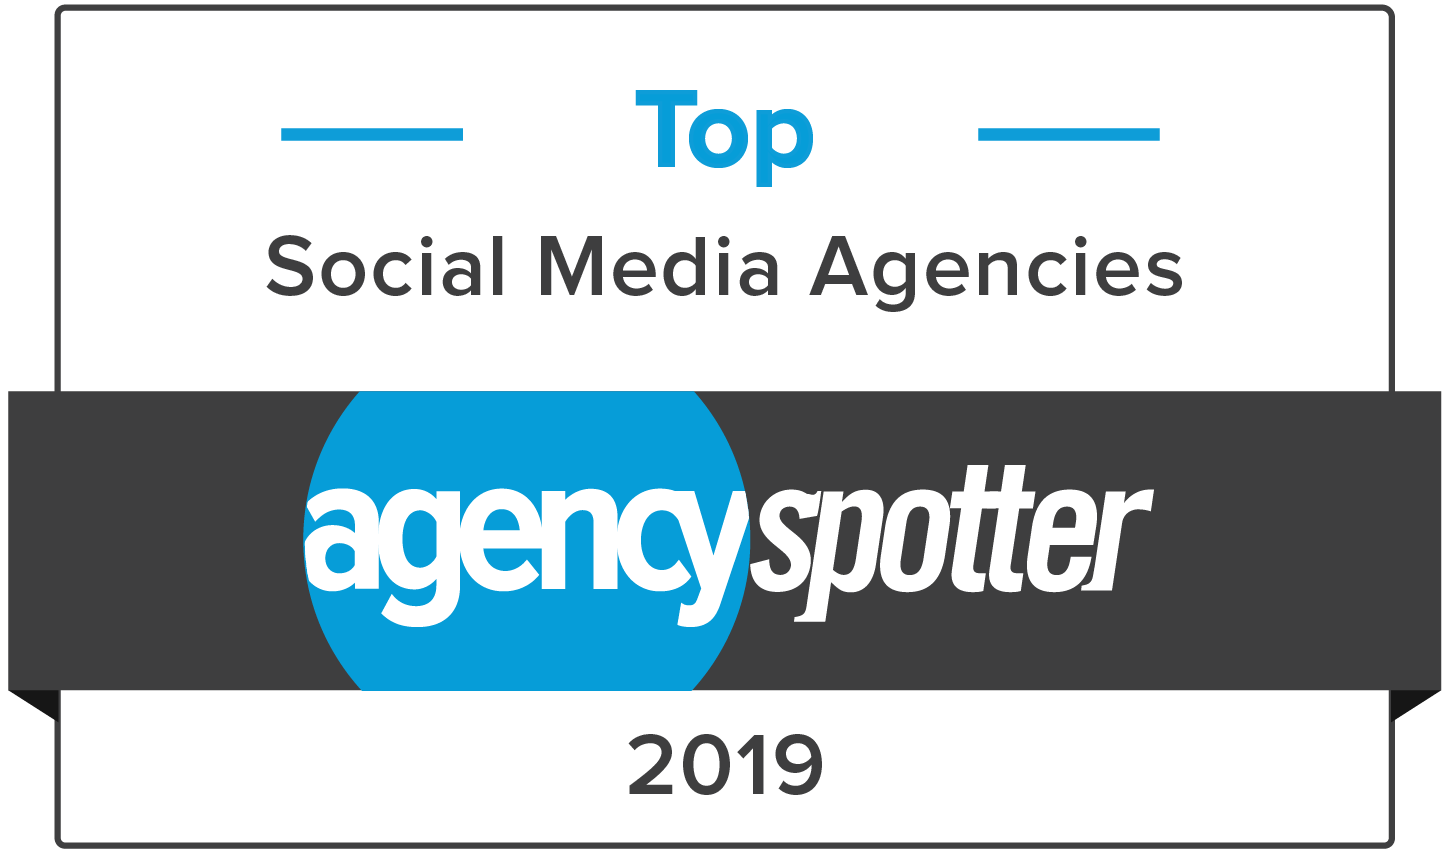 Social media marketing agencies 2019 bdd736b618981c5d15ed8510733c130f38033c3706478243bcb5ec829ef57f6b